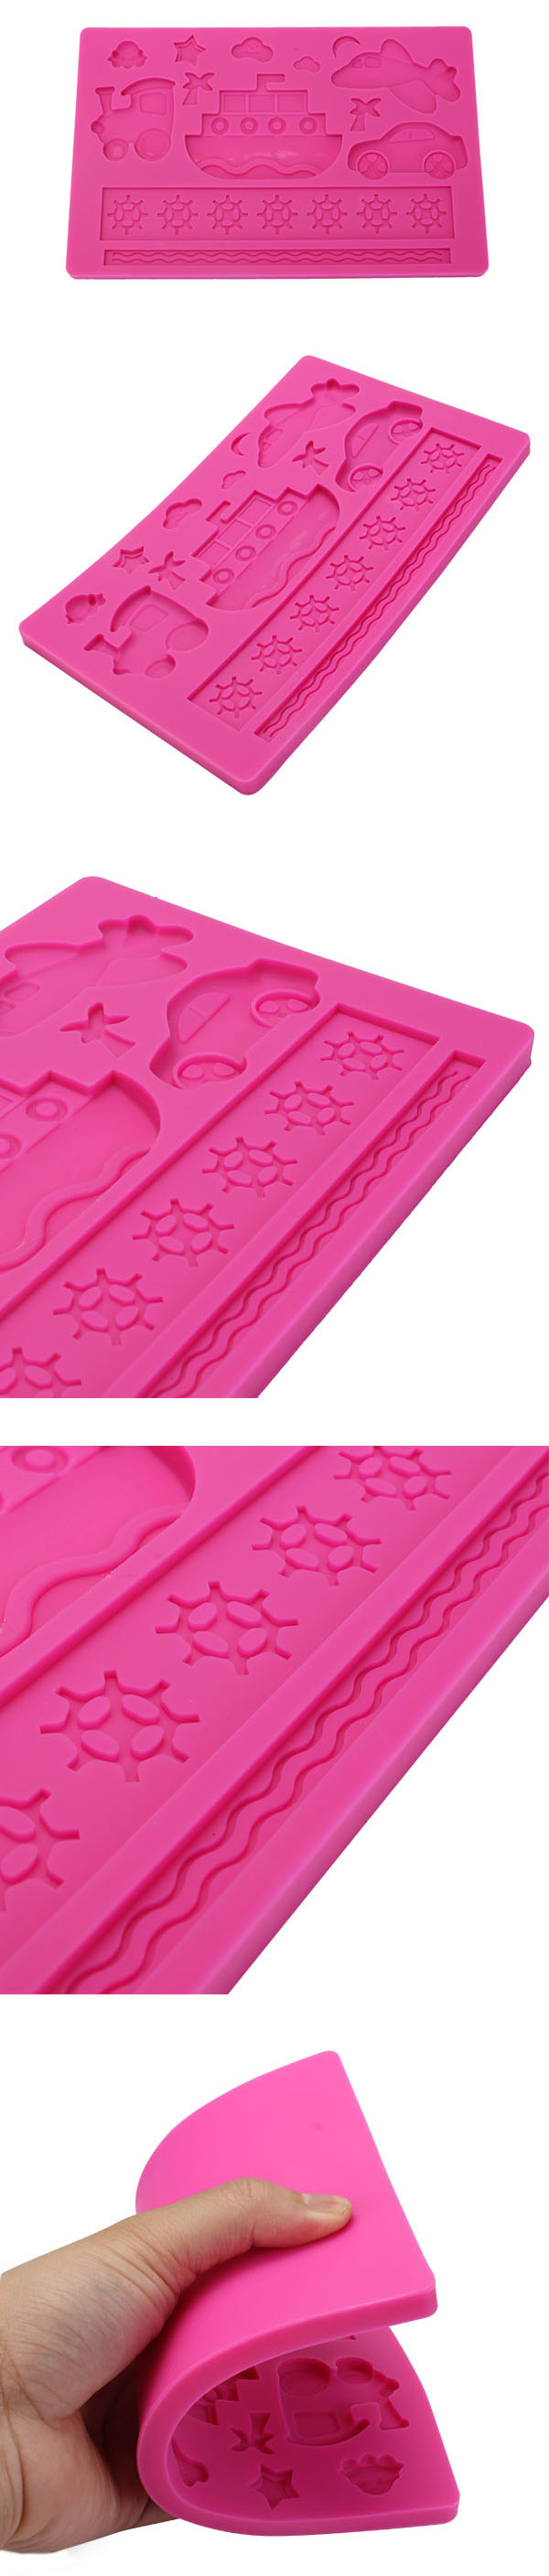 Plane Ship Silicone Embossing Mould Fondant Cake Mold Creative Baking Tools